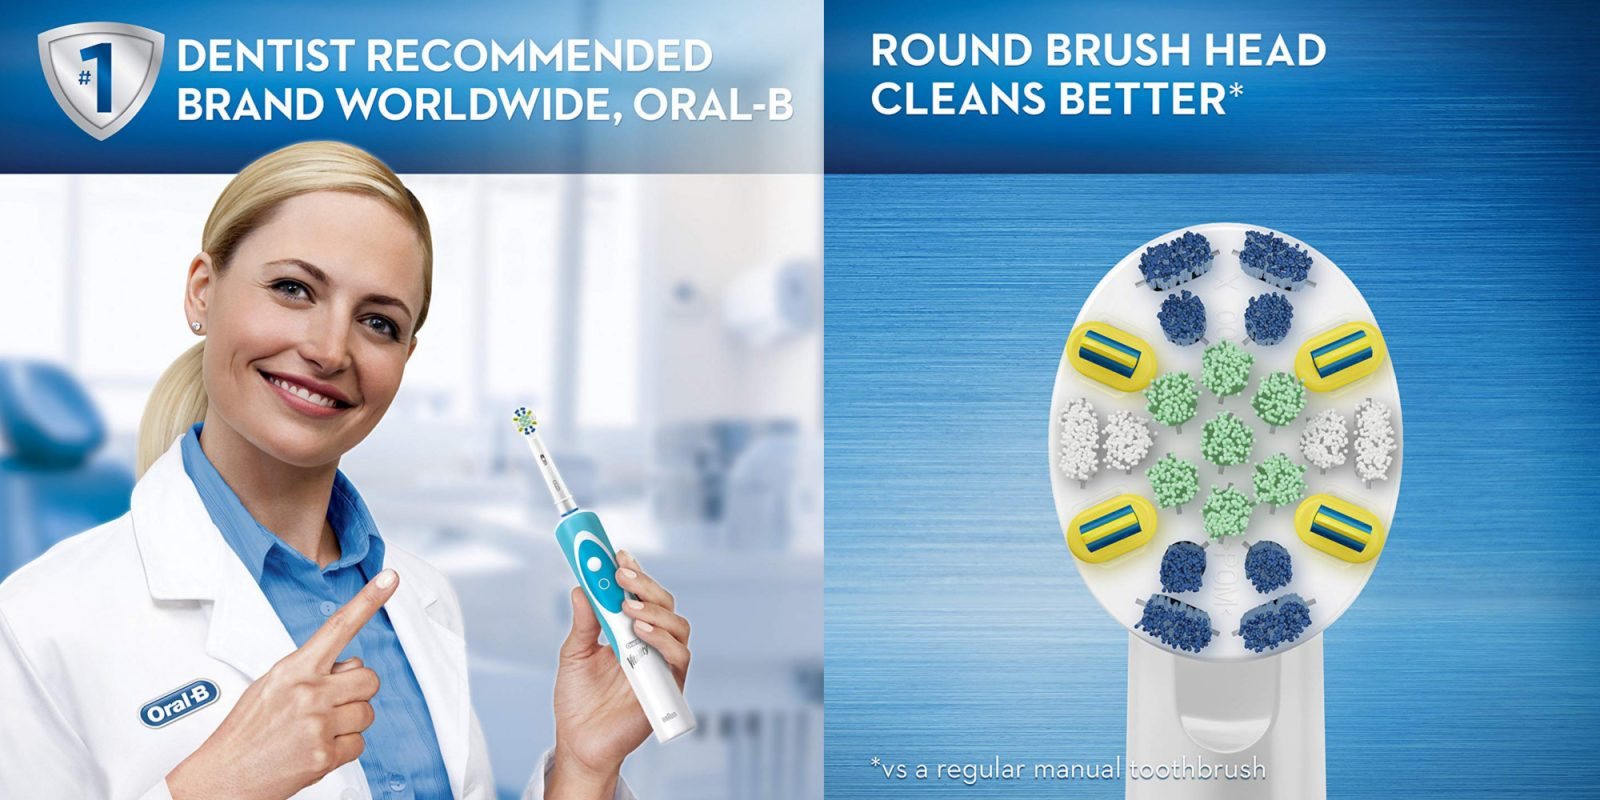 Grab this Oral-B FlossAction Electric Toothbrush for just $15 (Reg. $25+)